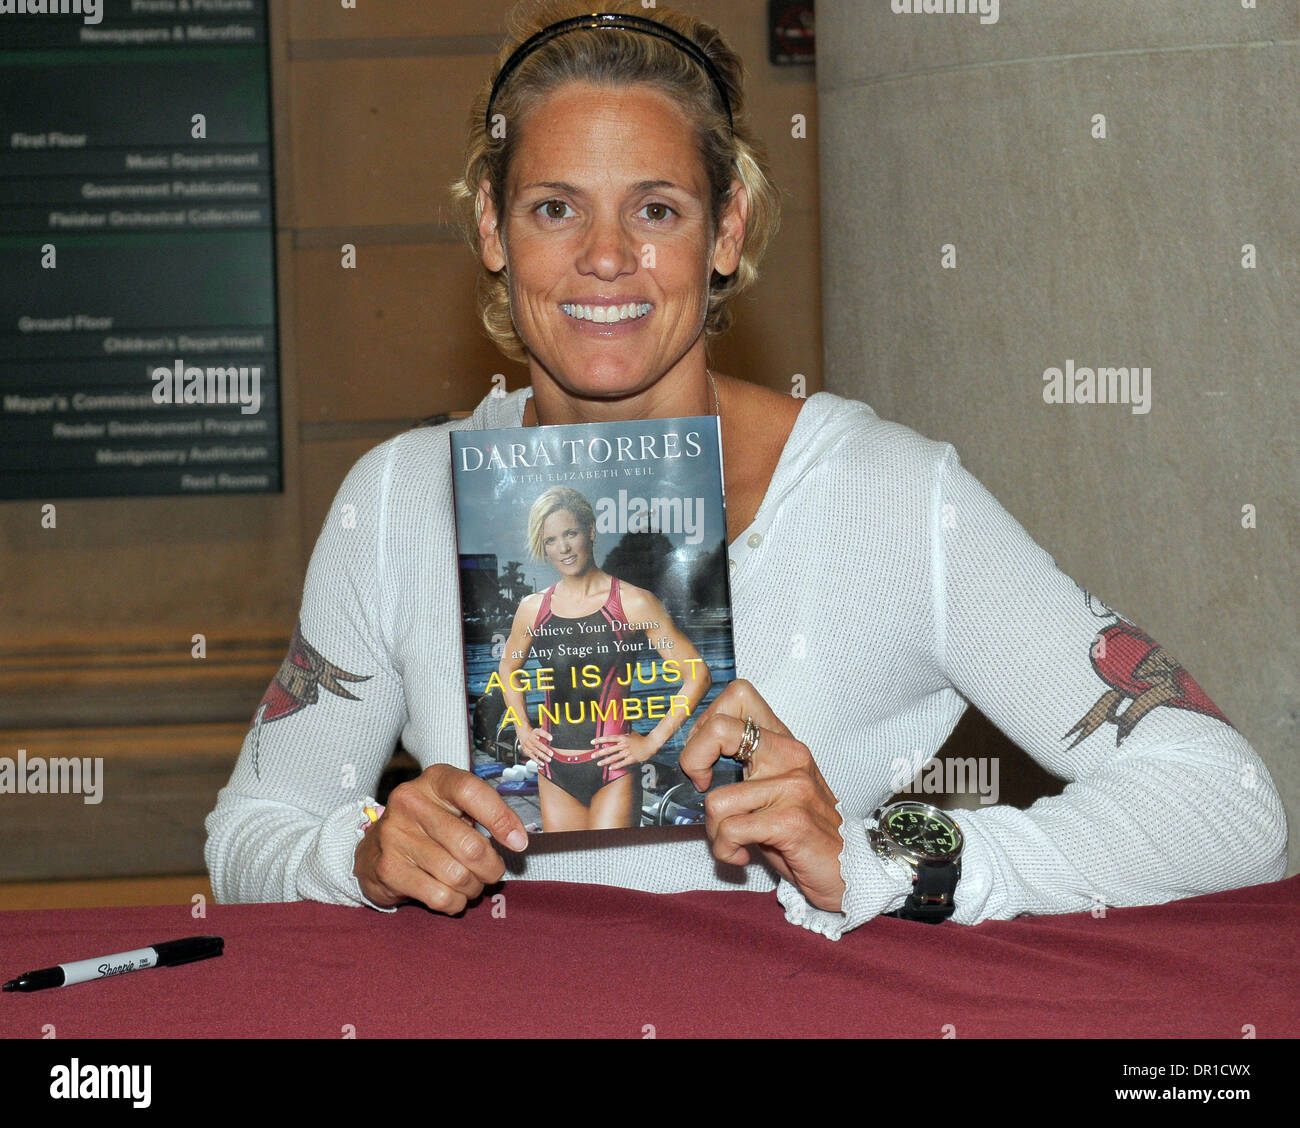 Discussion on this topic: Nikki Visser, dara-torres-12-olympic-medals/